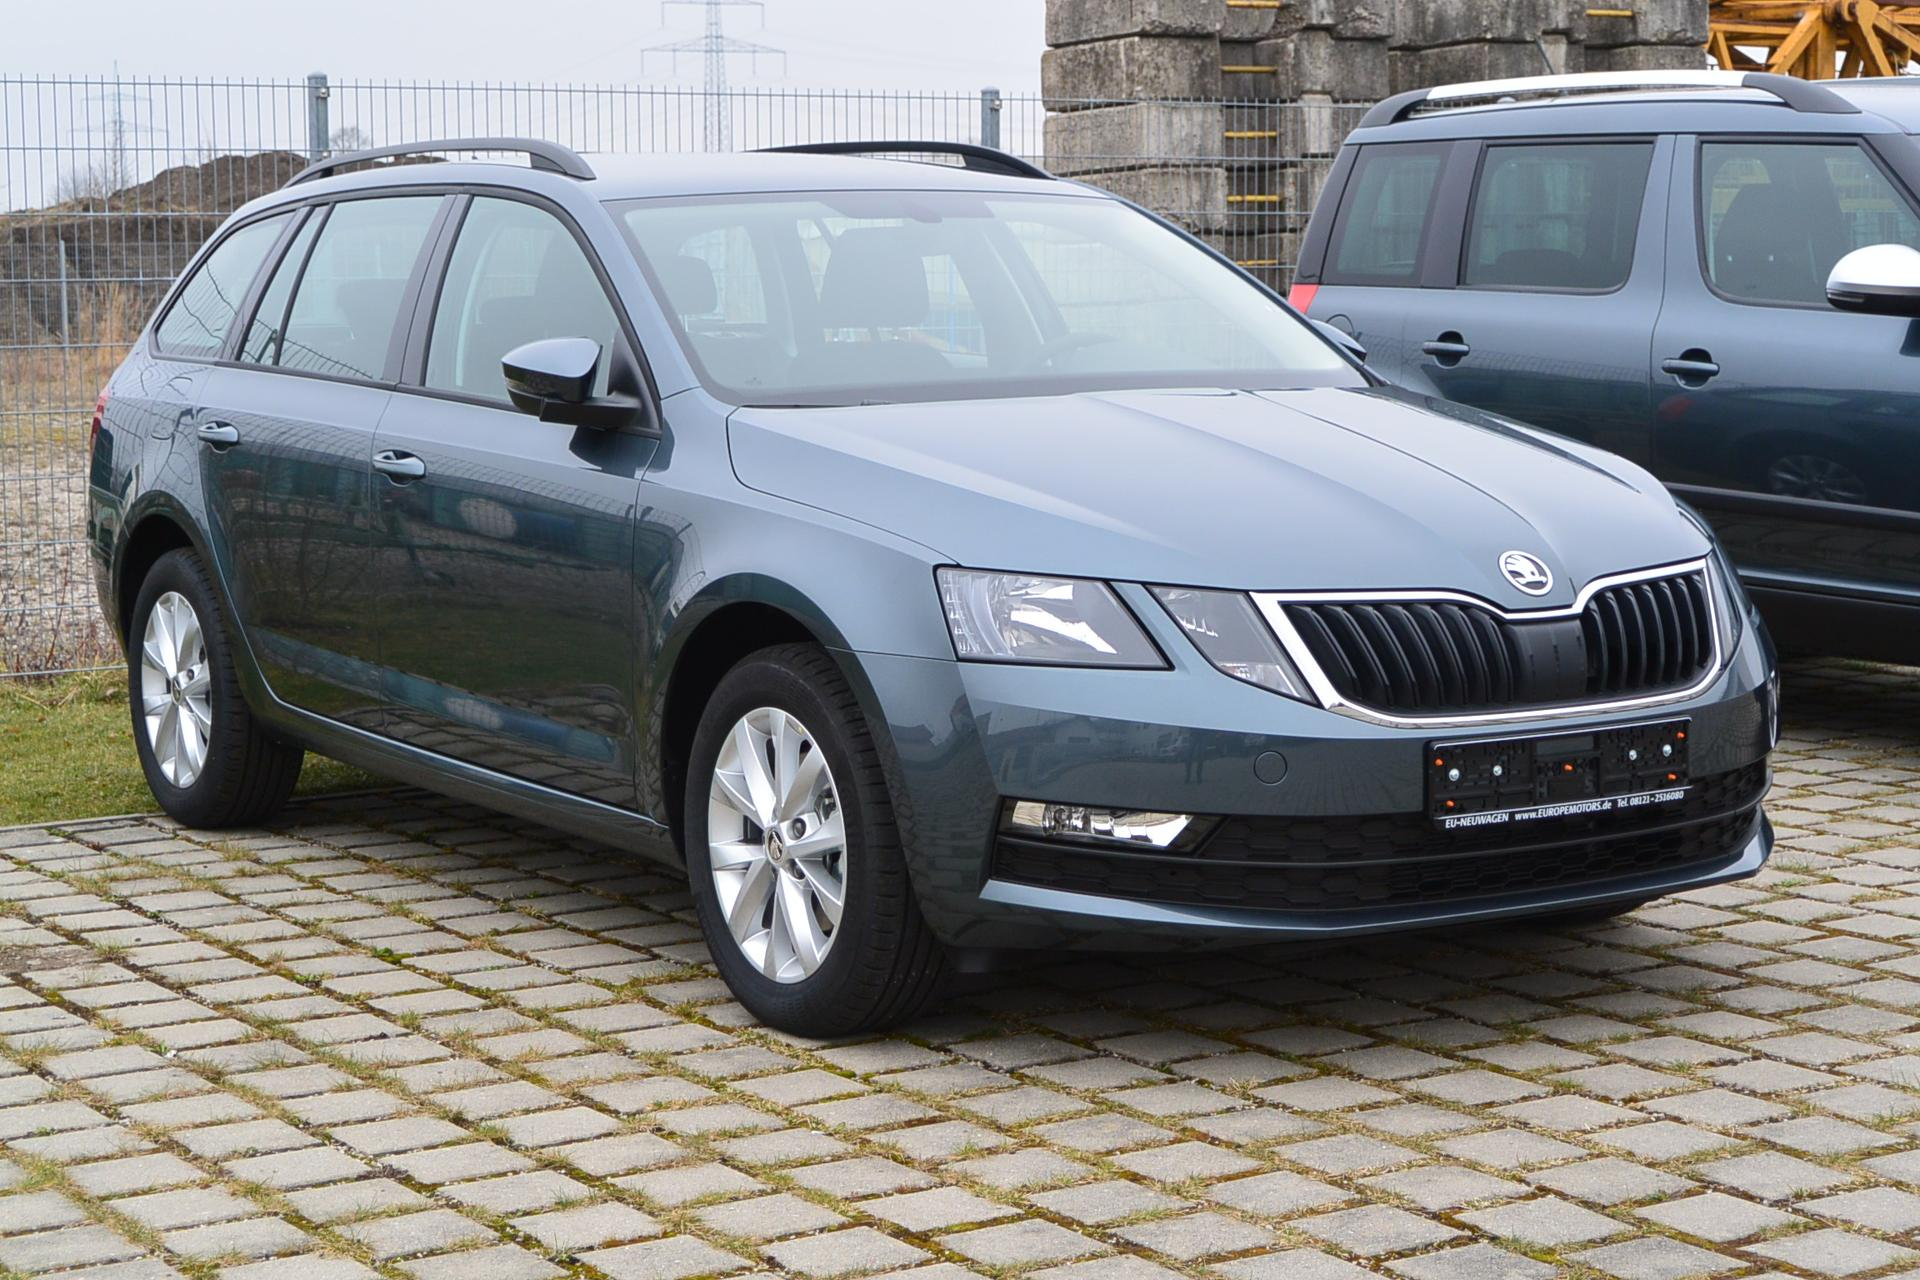 skoda octavia combi exe navi 2 0 tdi scr 110 kw reimport eu neuwagen zum g nstigen preis. Black Bedroom Furniture Sets. Home Design Ideas